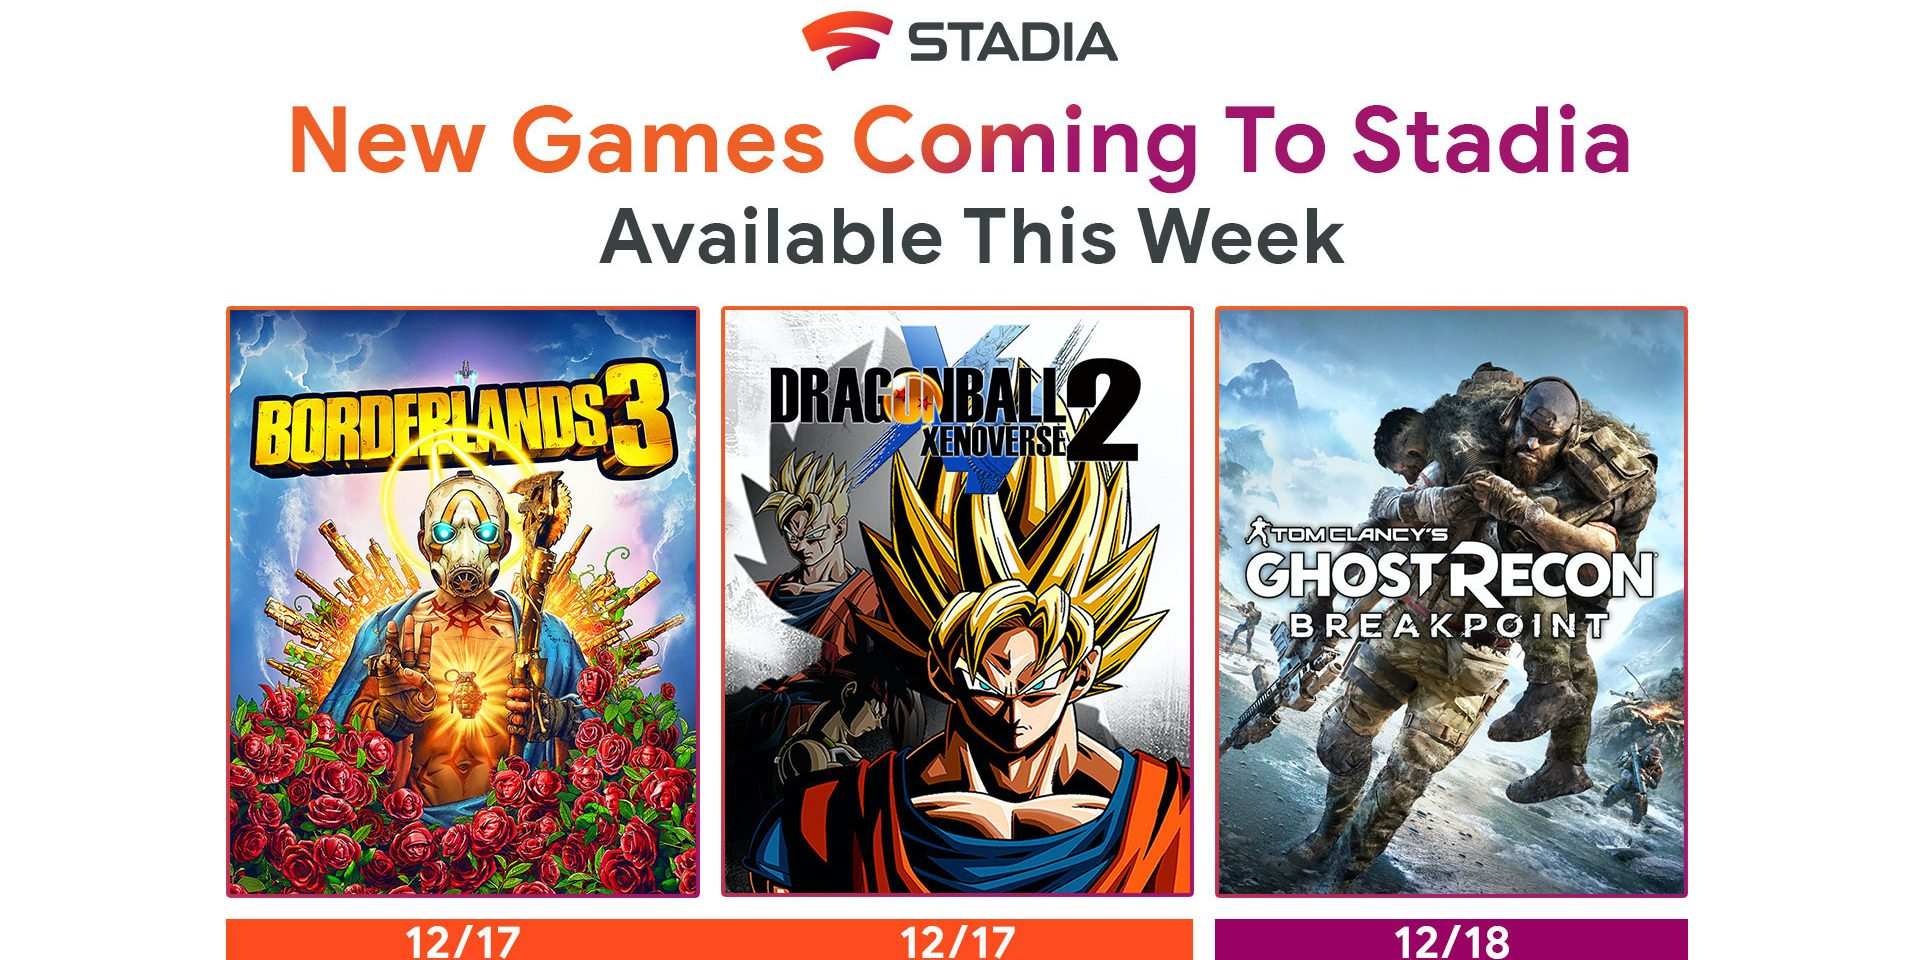 Stadia adds Borderlands 3 and Dragon Ball Xenoverse 2, Ghost Recon Breakpoint tomorrow